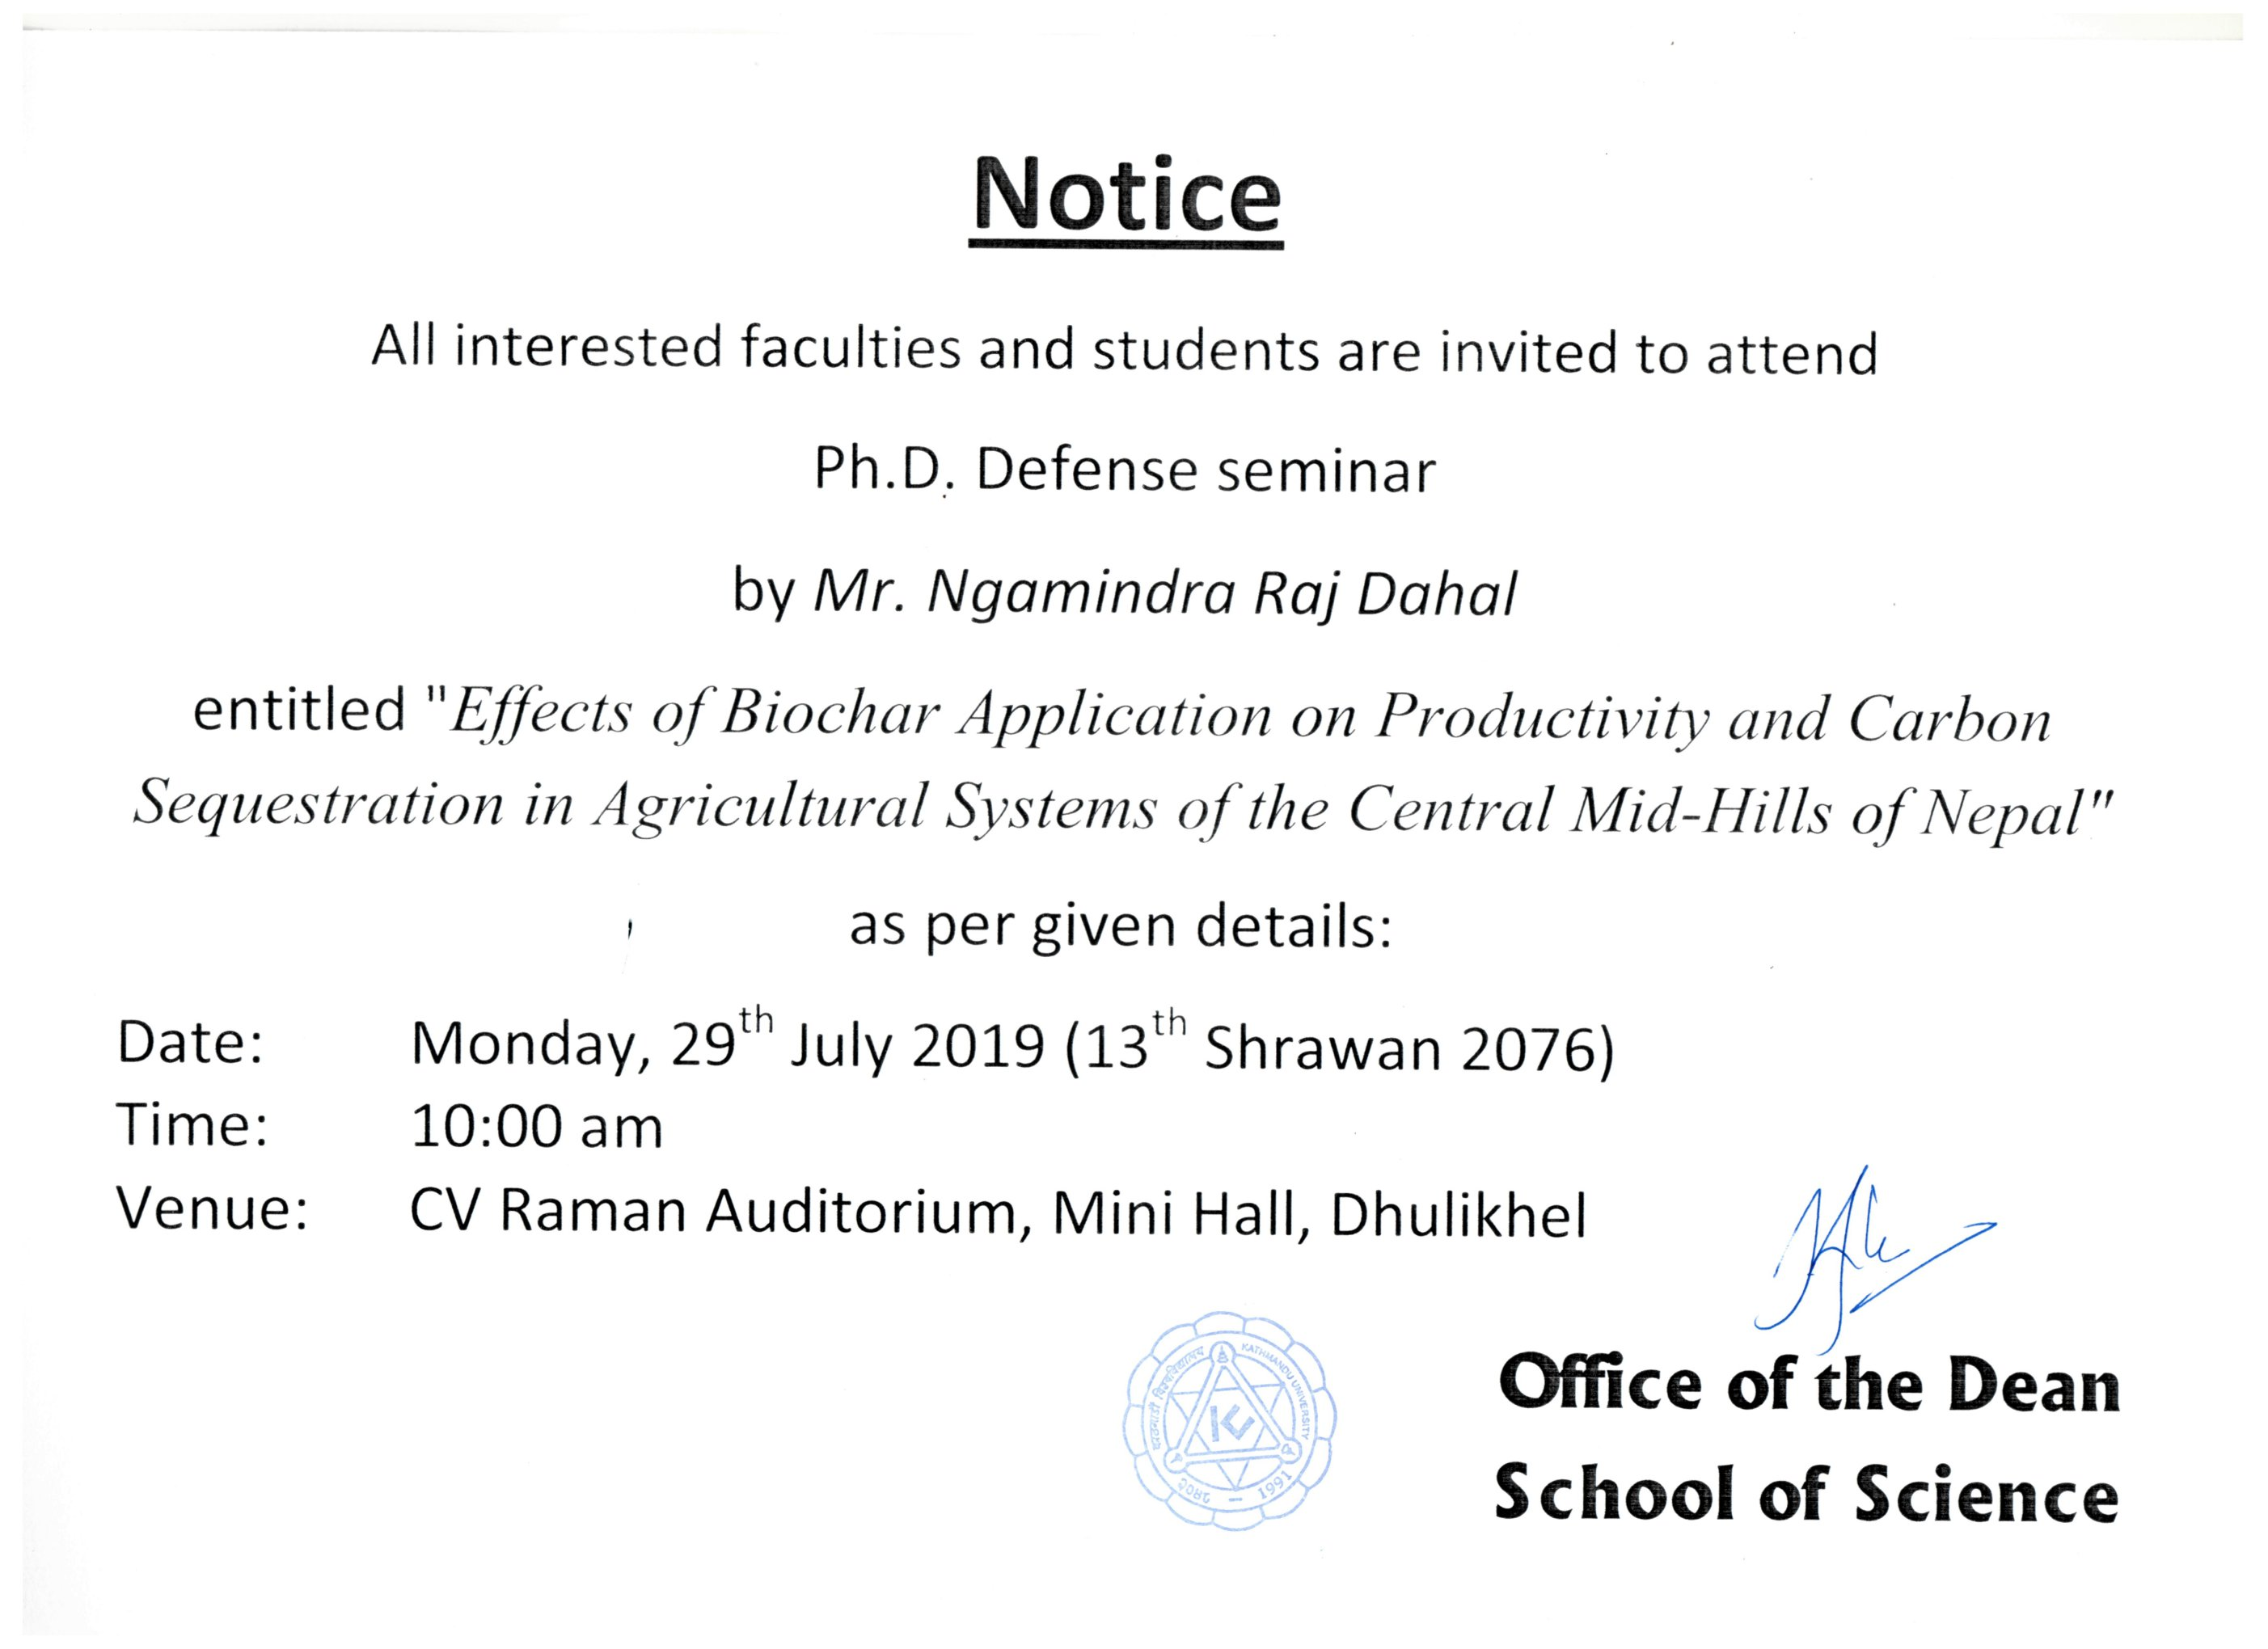 Ph. D Defence of Ngamindra Dahal